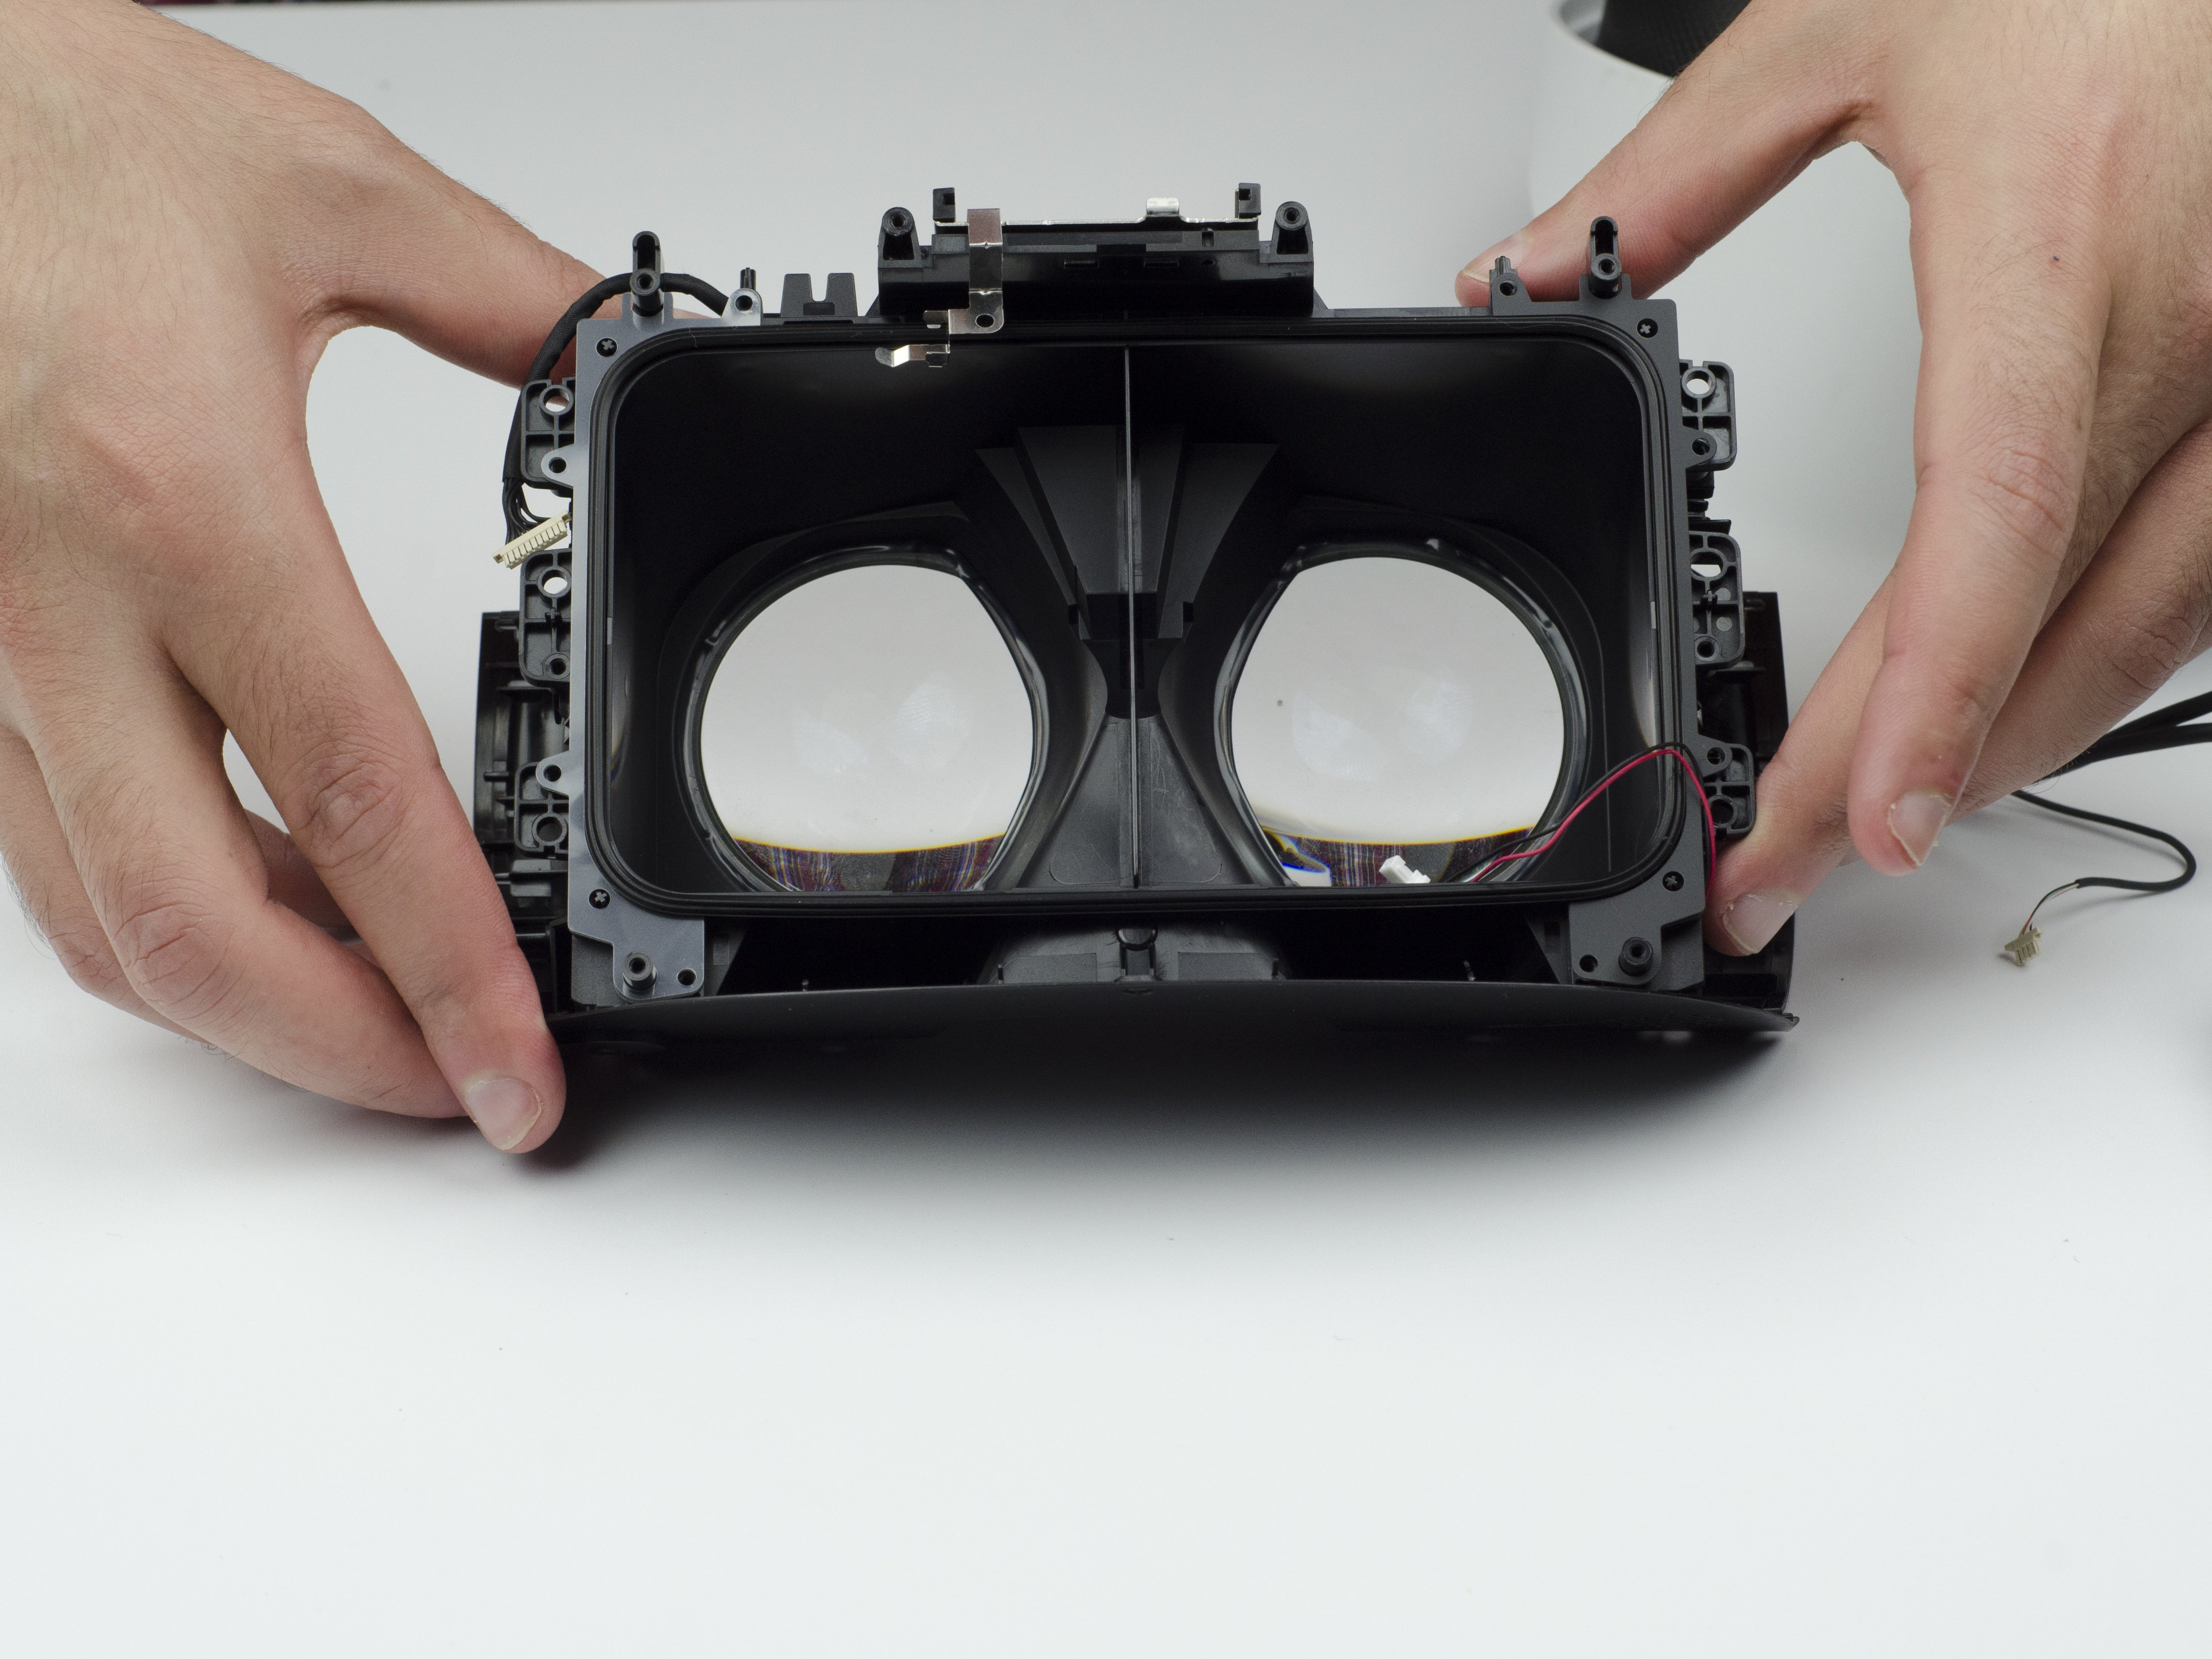 PlayStation VR Headset Lenses Replacement - iFixit Repair